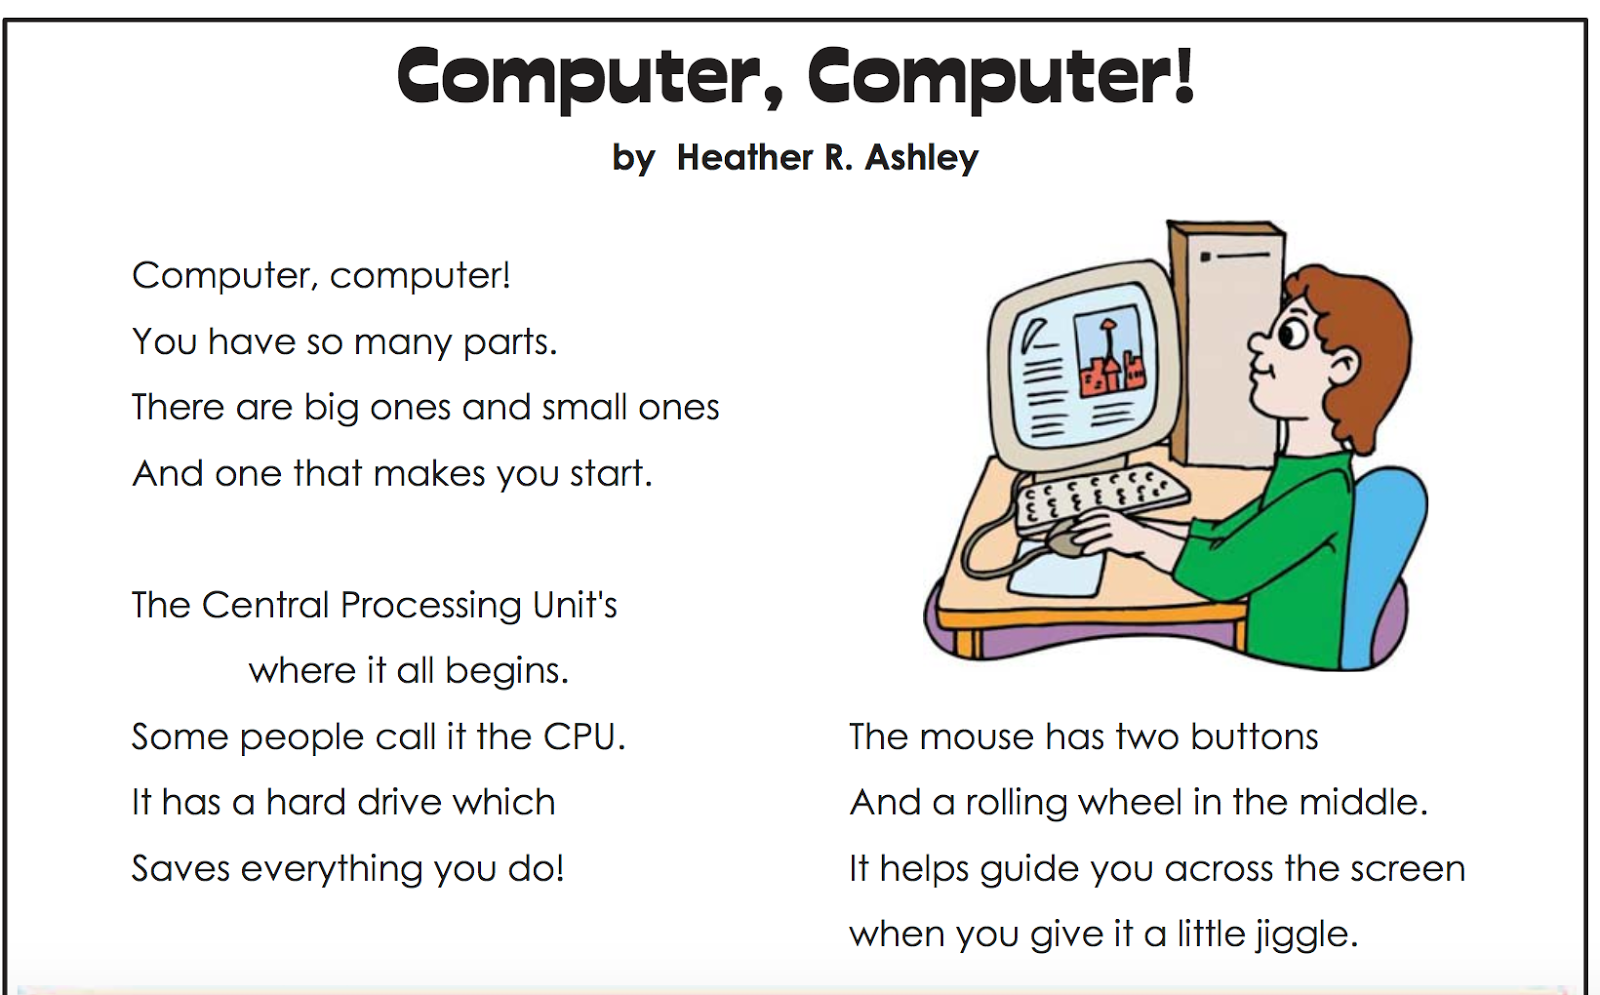 today you are going to review the different parts of a computer by watching a brain pop jr movie after you finish watching the movie show what you know